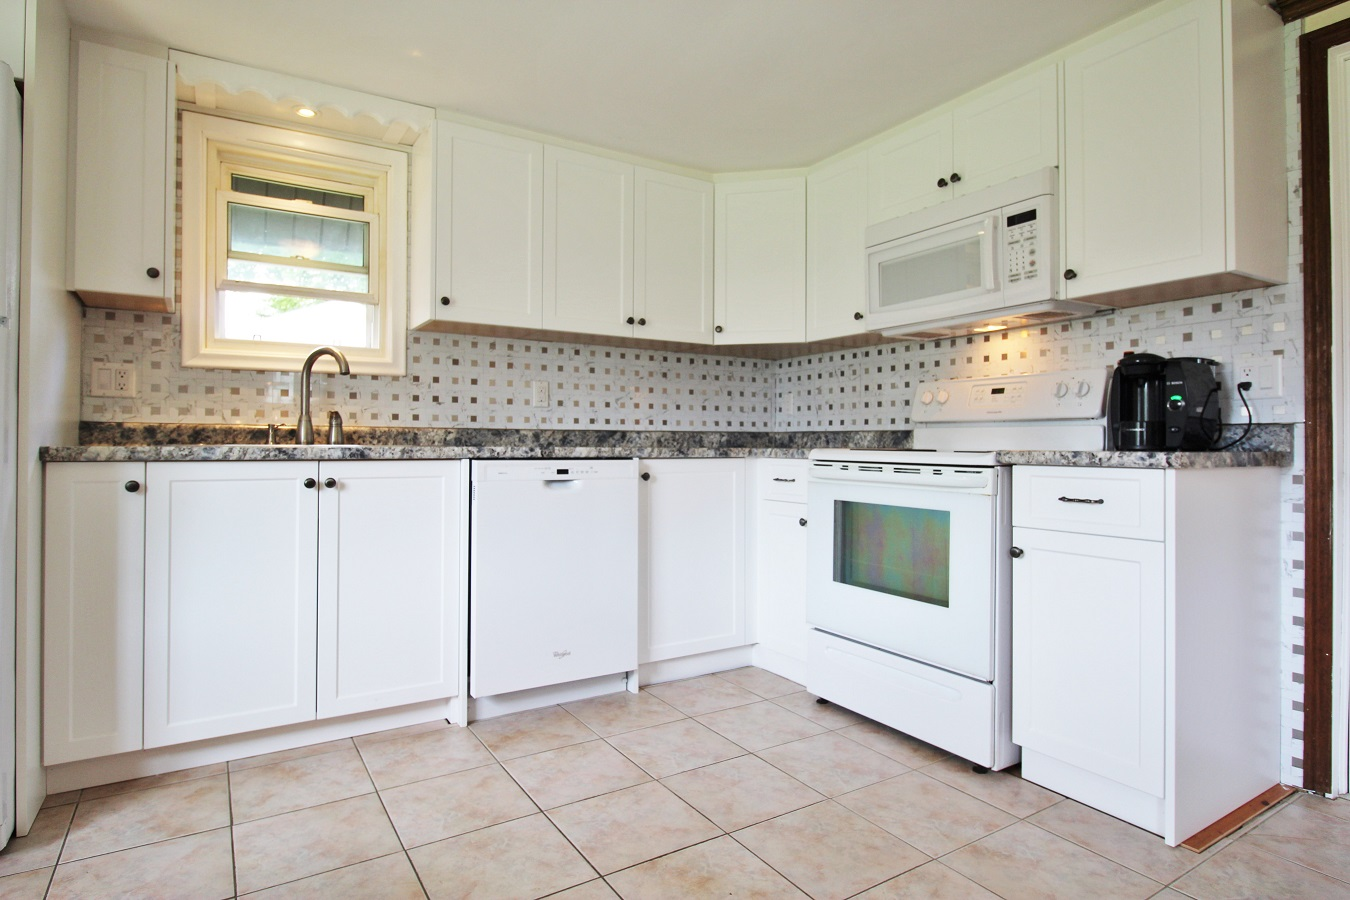 Kozy Kottage Kitchen Crystal Beach Cottage Rentals